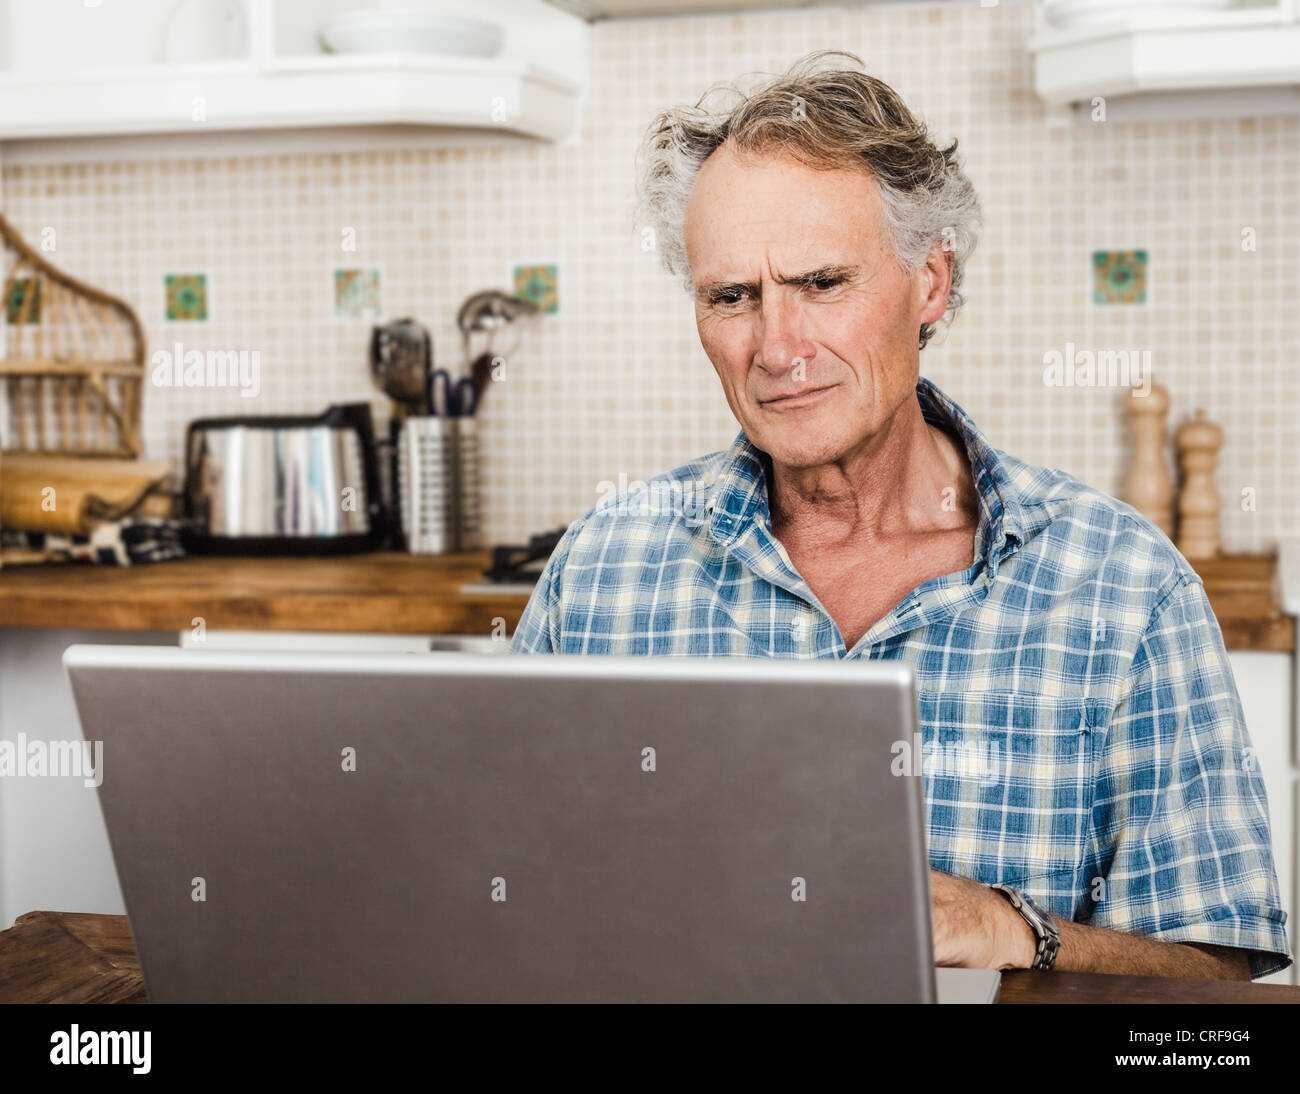 Older man using laptop in kitchen - Stock Image